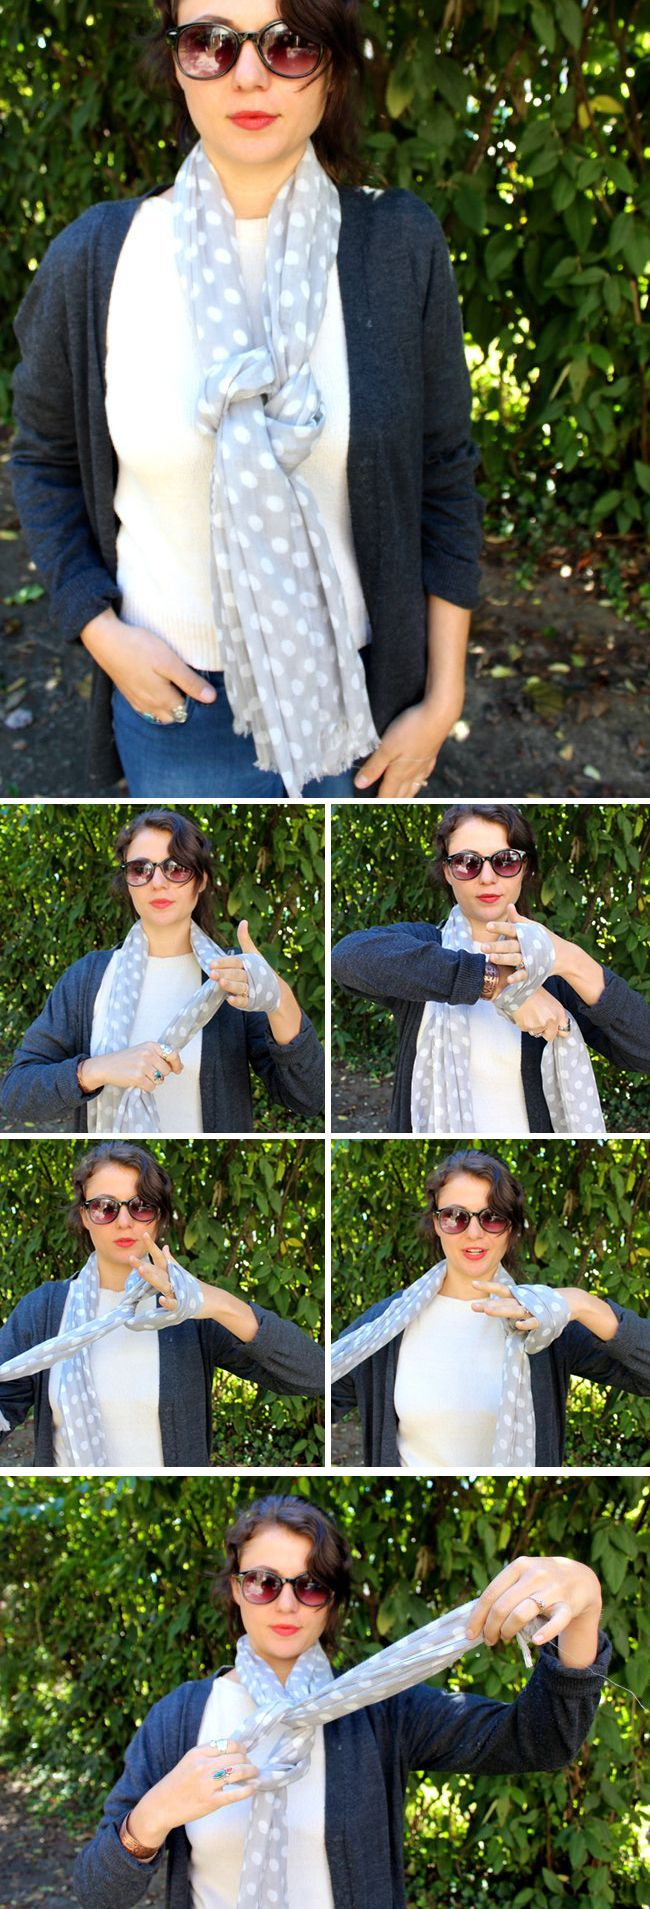 13 Super Stylish Ways To Tie A Scarf My Style Pinboard How The Doublewrap Double Windsor Knot Http Hellonaturalco